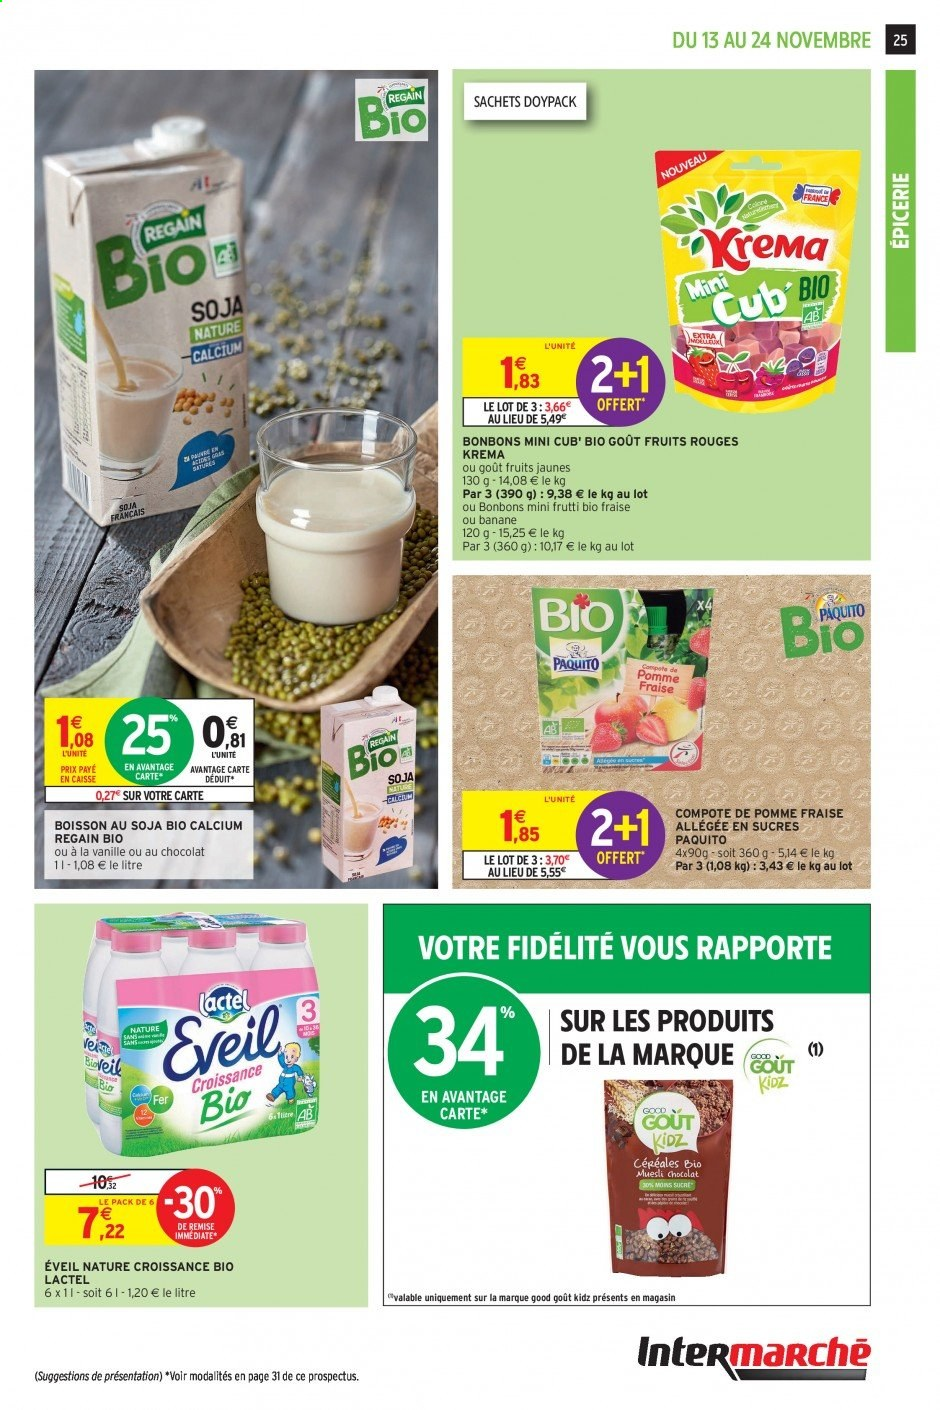 Catalogue Intermarché - 13.11.2019 - 24.11.2019. Page 25.